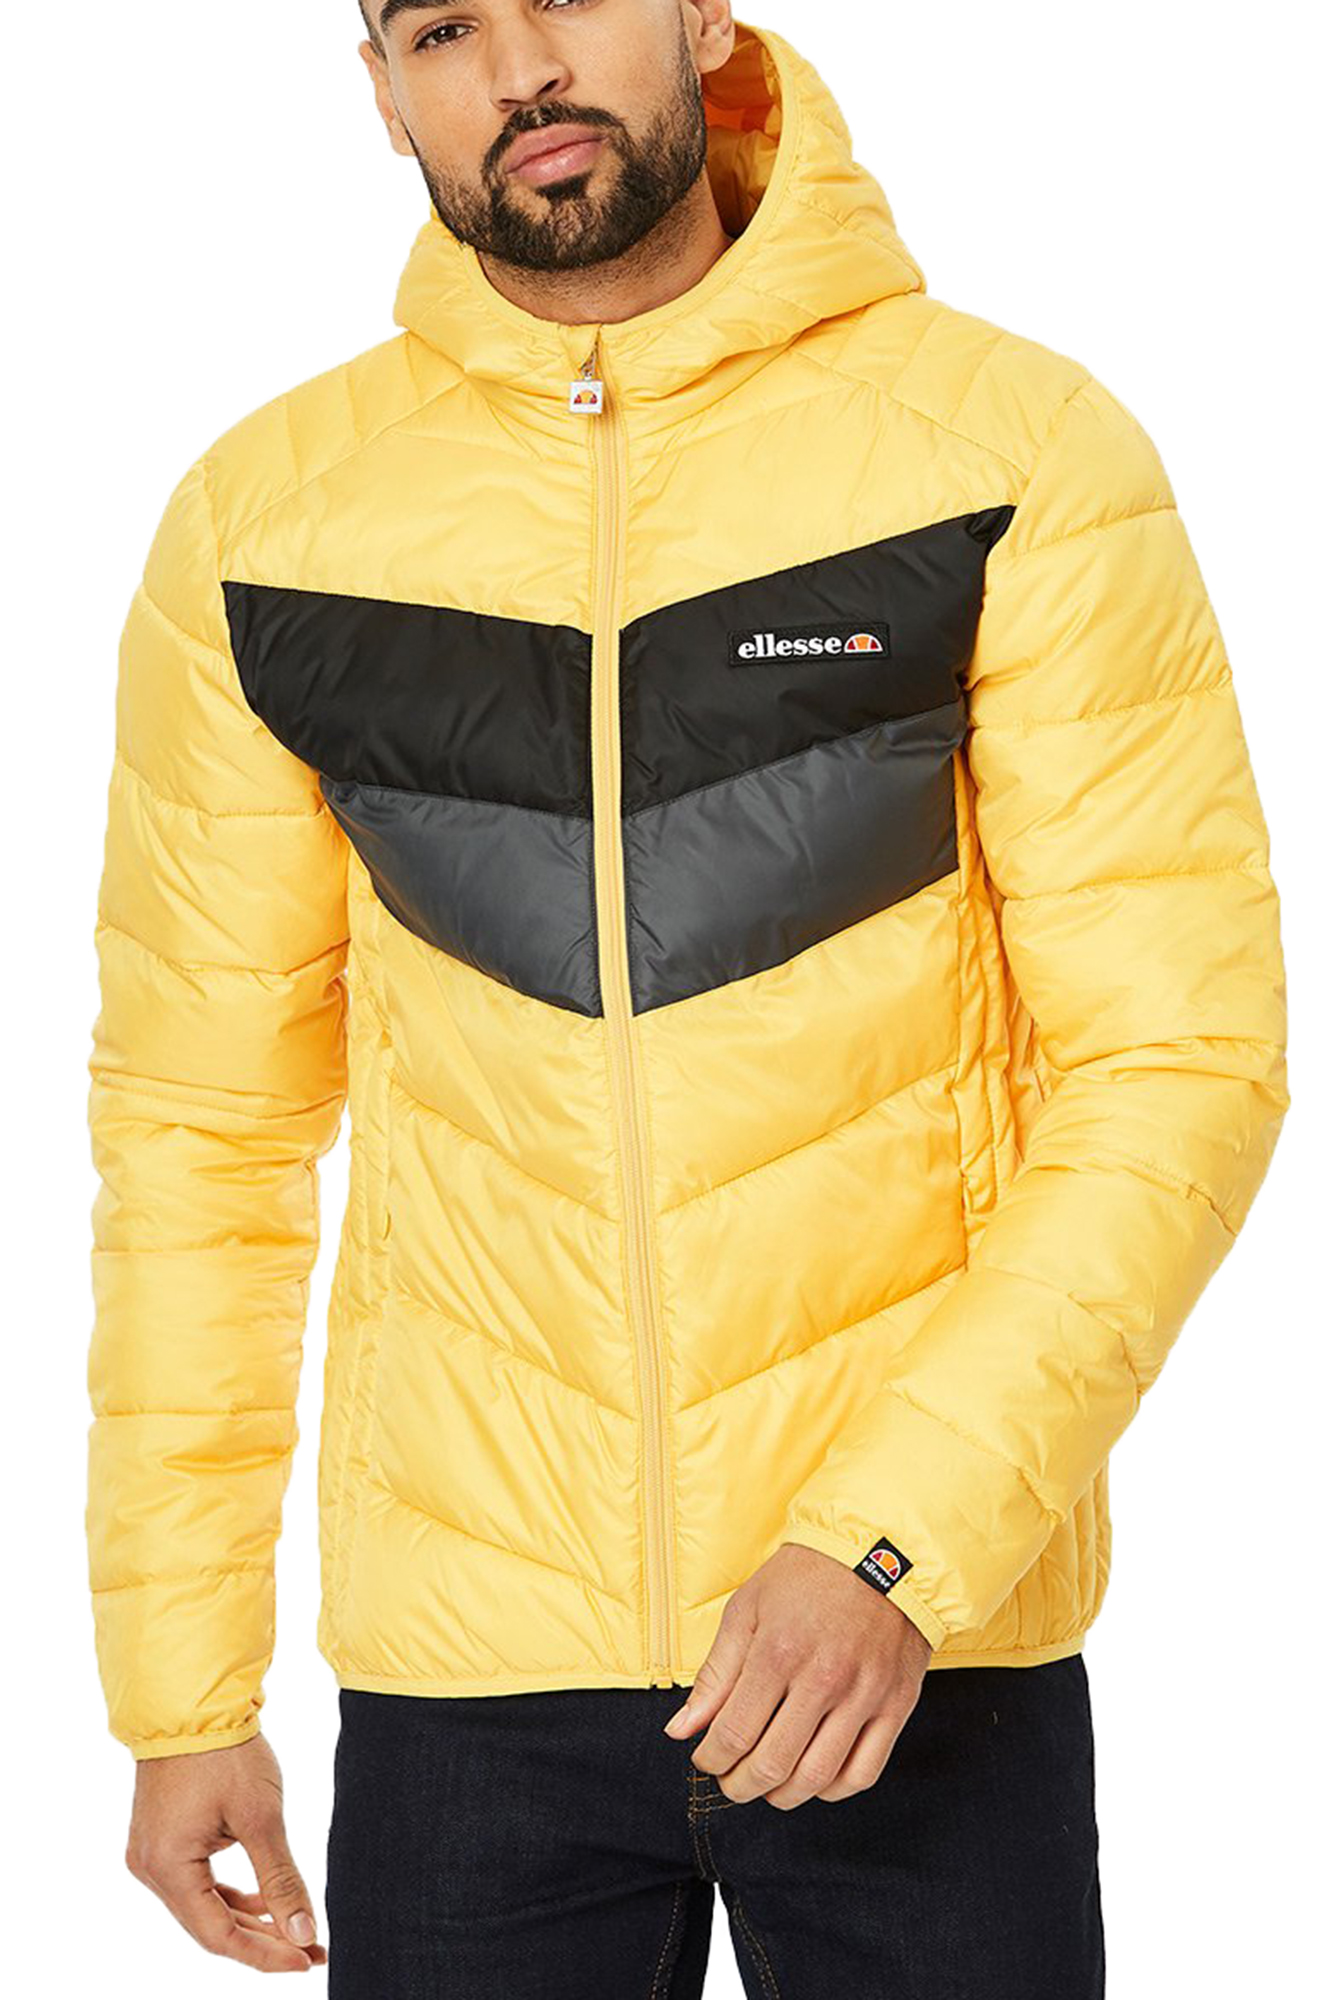 c6c45c2e0fc Click on the Image to Enlarge. More Details. The Ginap men's puffer jacket  by Ellesse is the ideal fashion winter parka ...